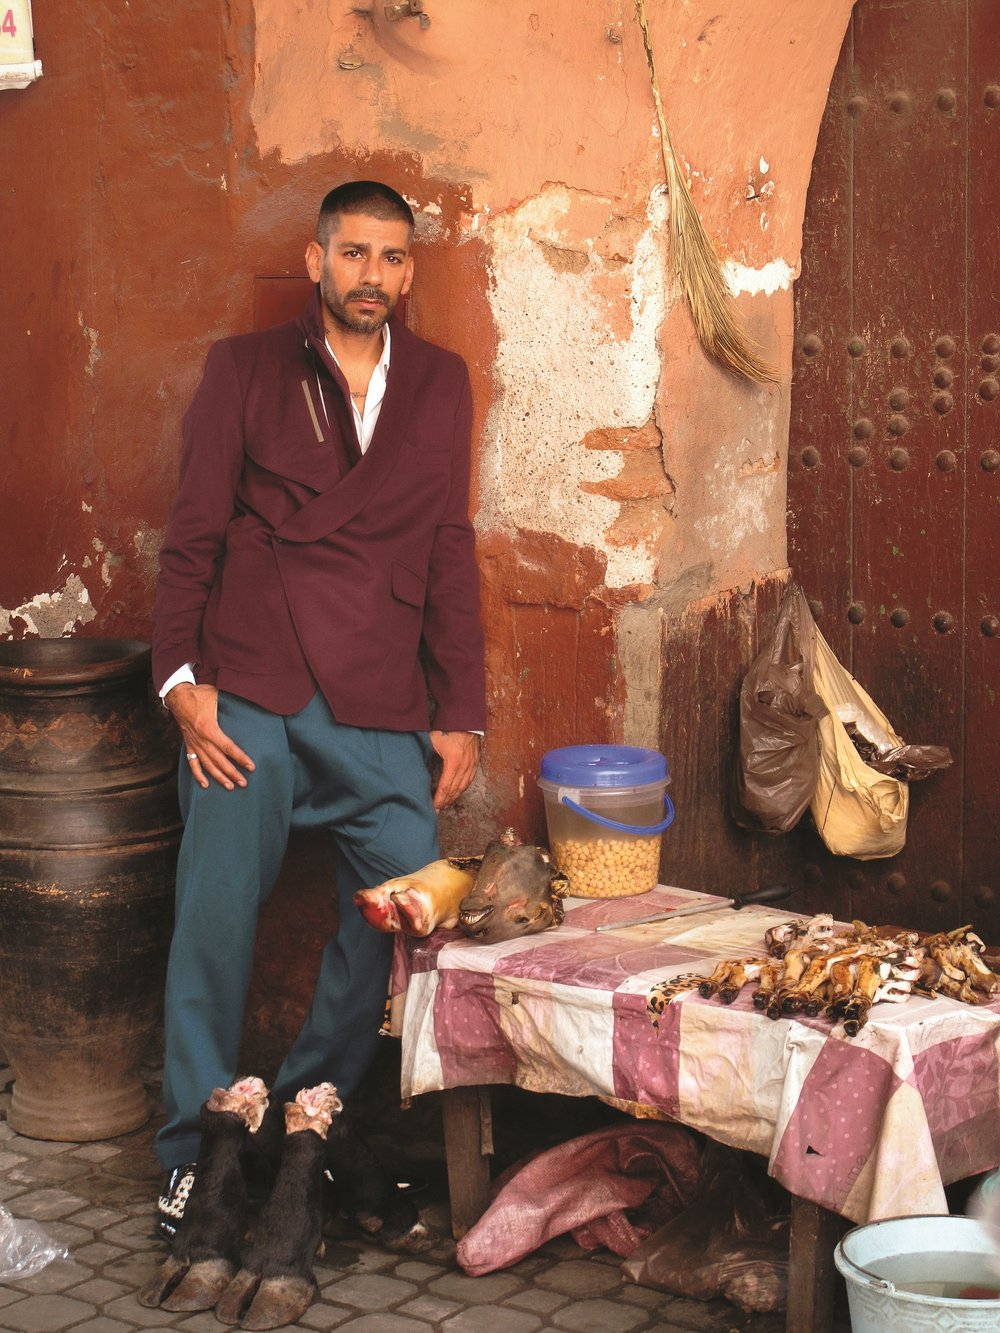 5 globetrotter issue 2 fashion spread morocco abcb culture and bullshit.jpg